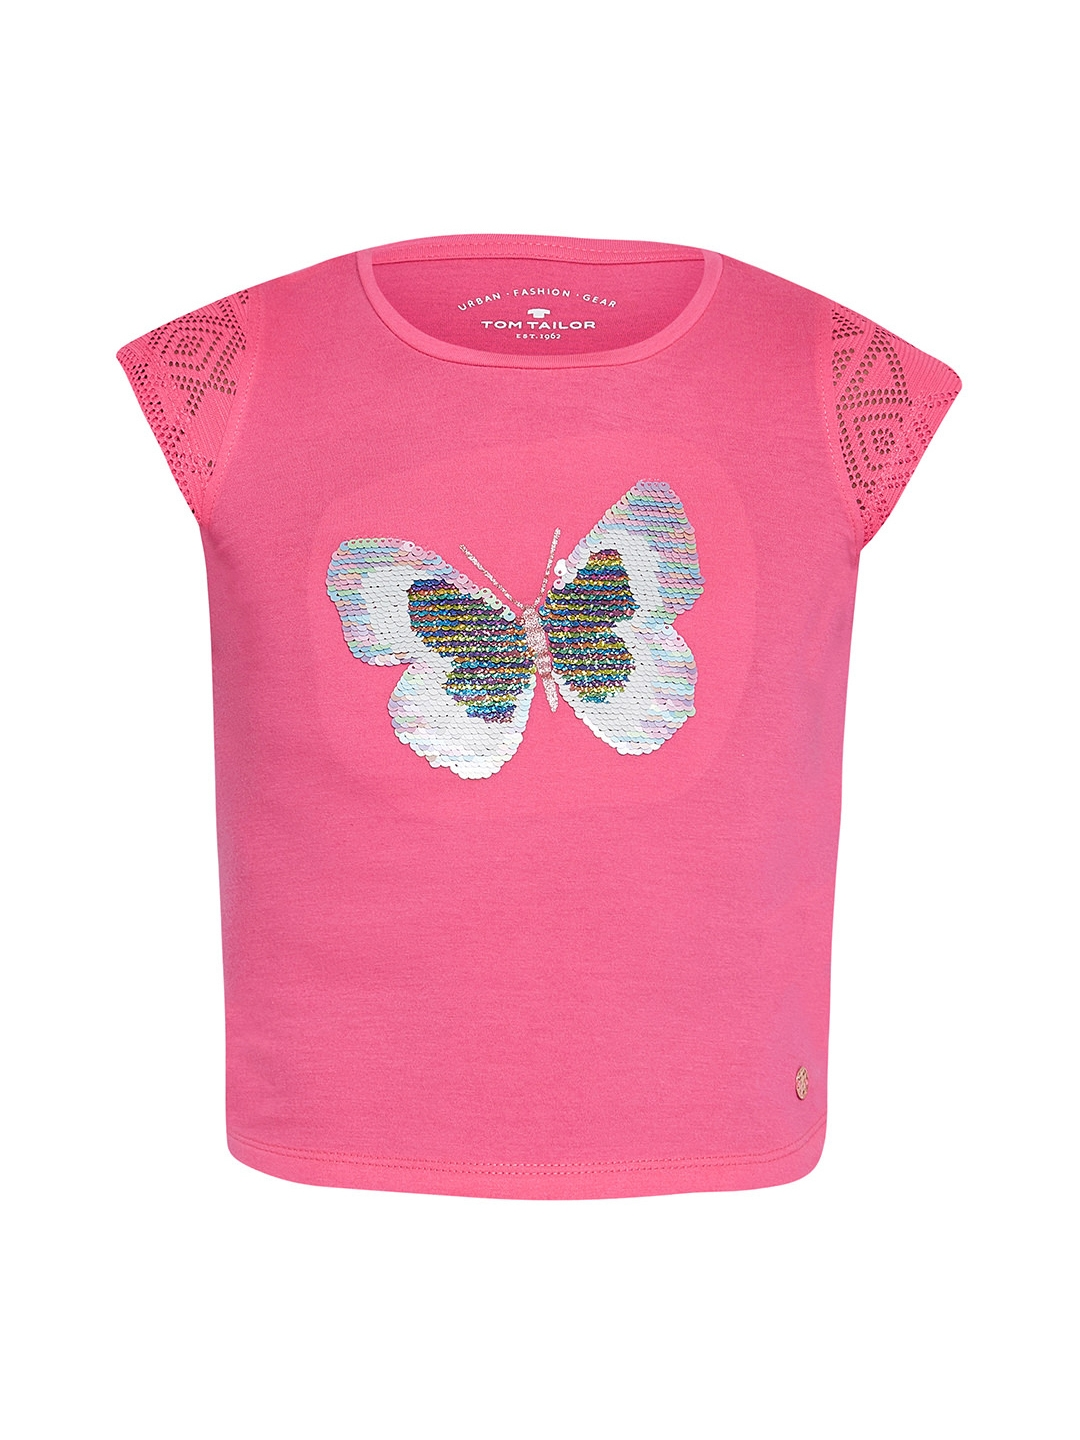 dc3653180f4d Buy Tom Tailor Girls Pink Printed Round Neck T Shirt - Tshirts for ...